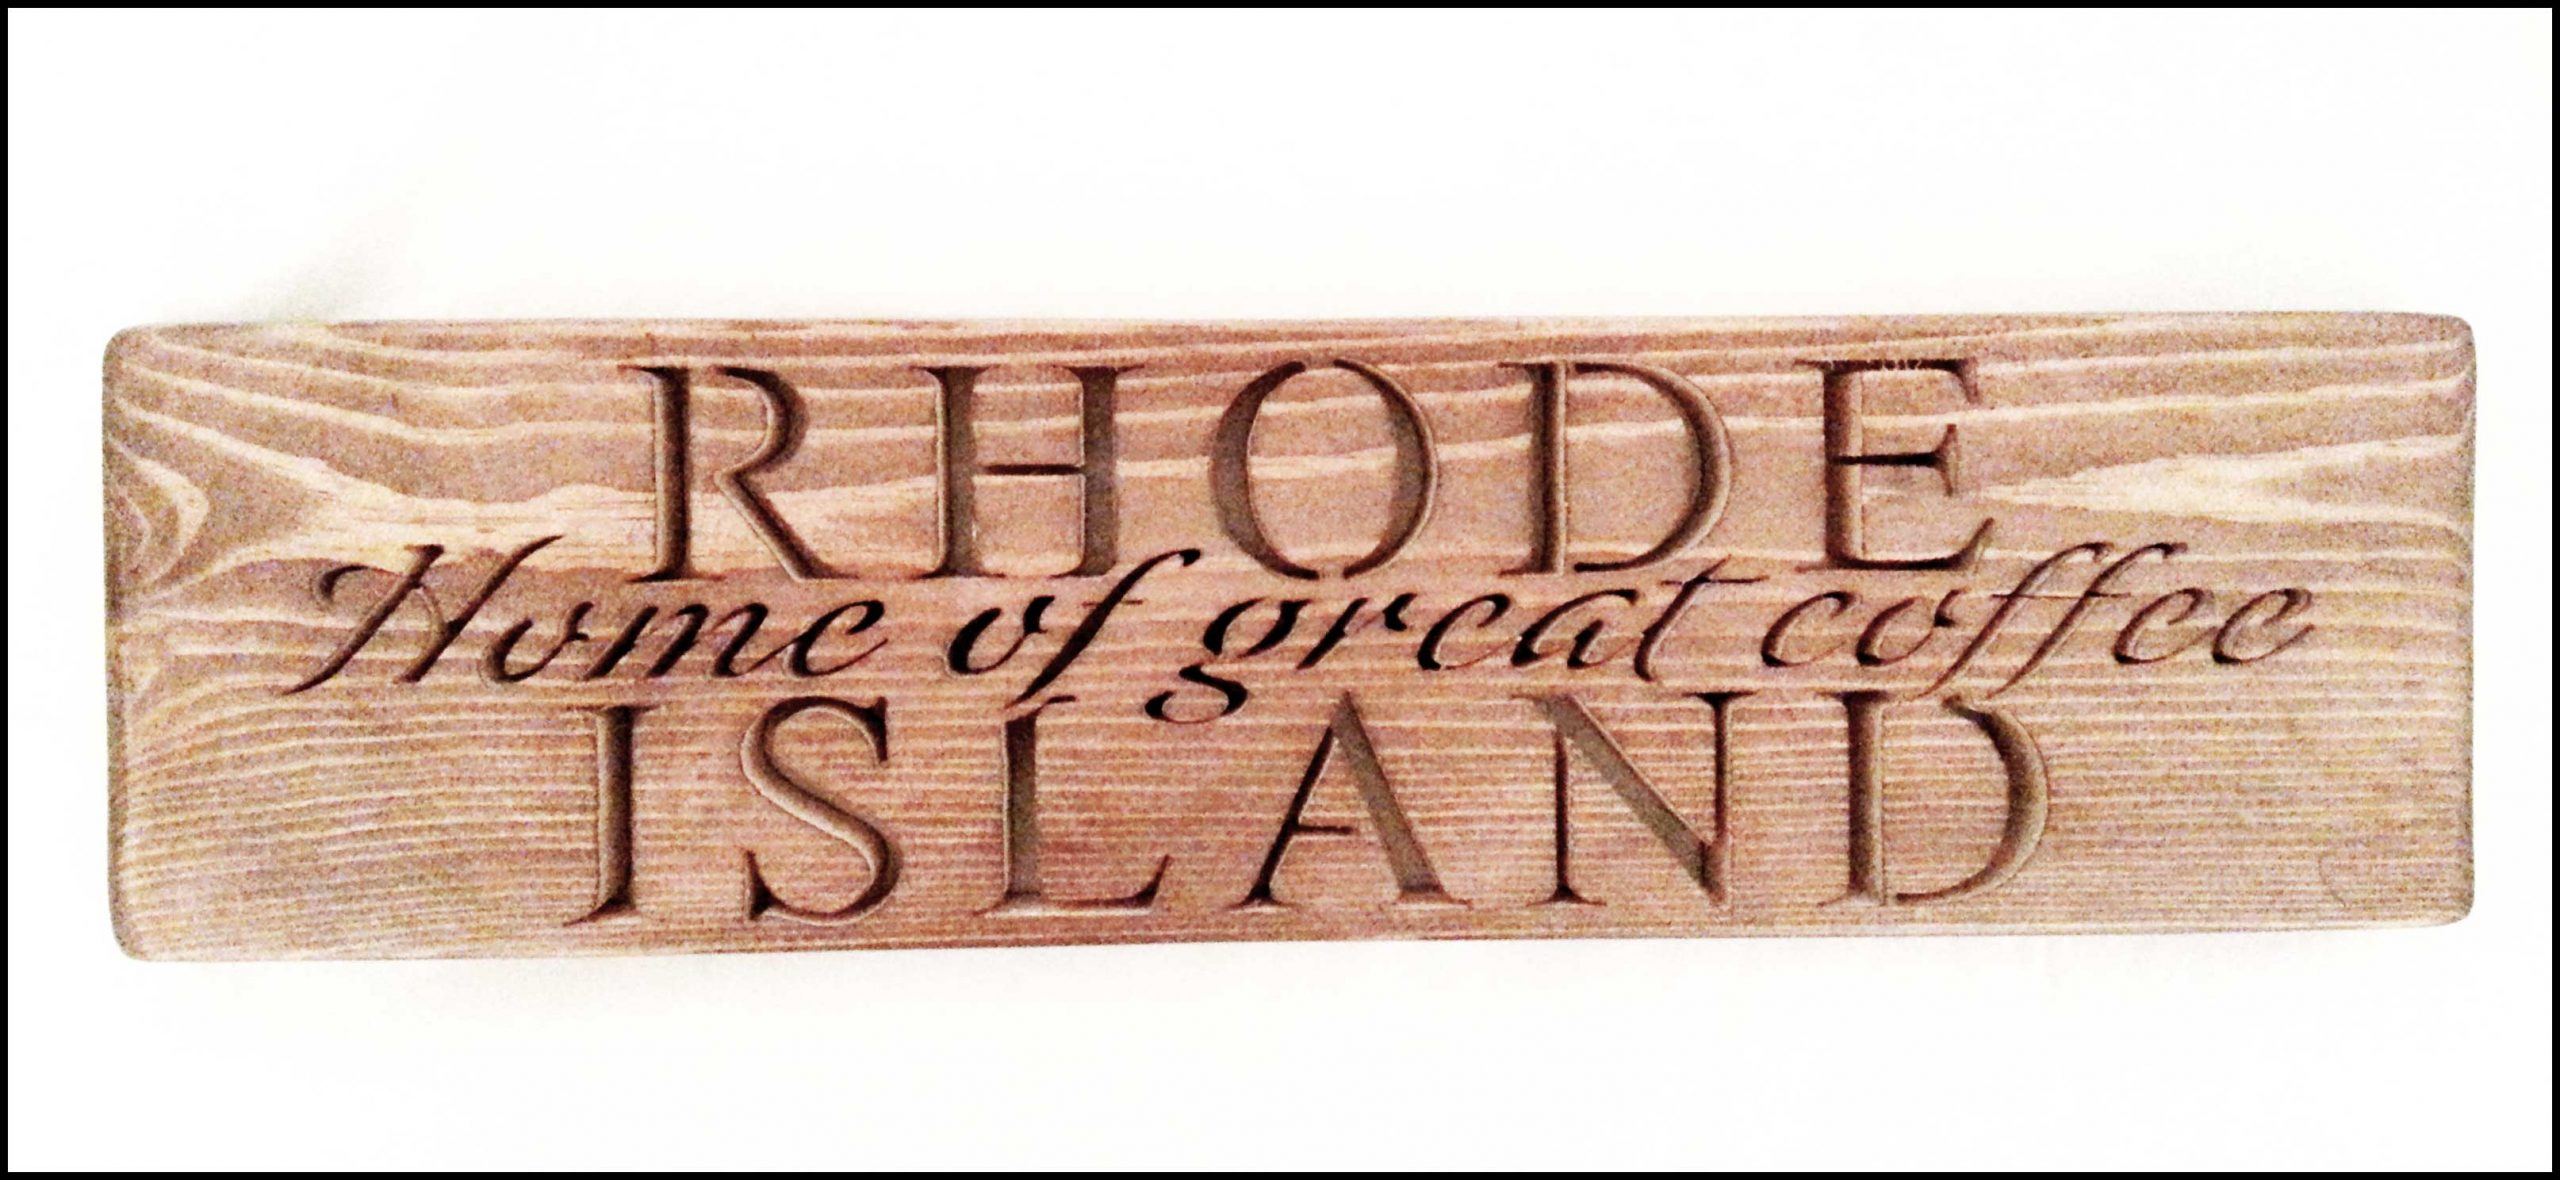 business name plaque Image